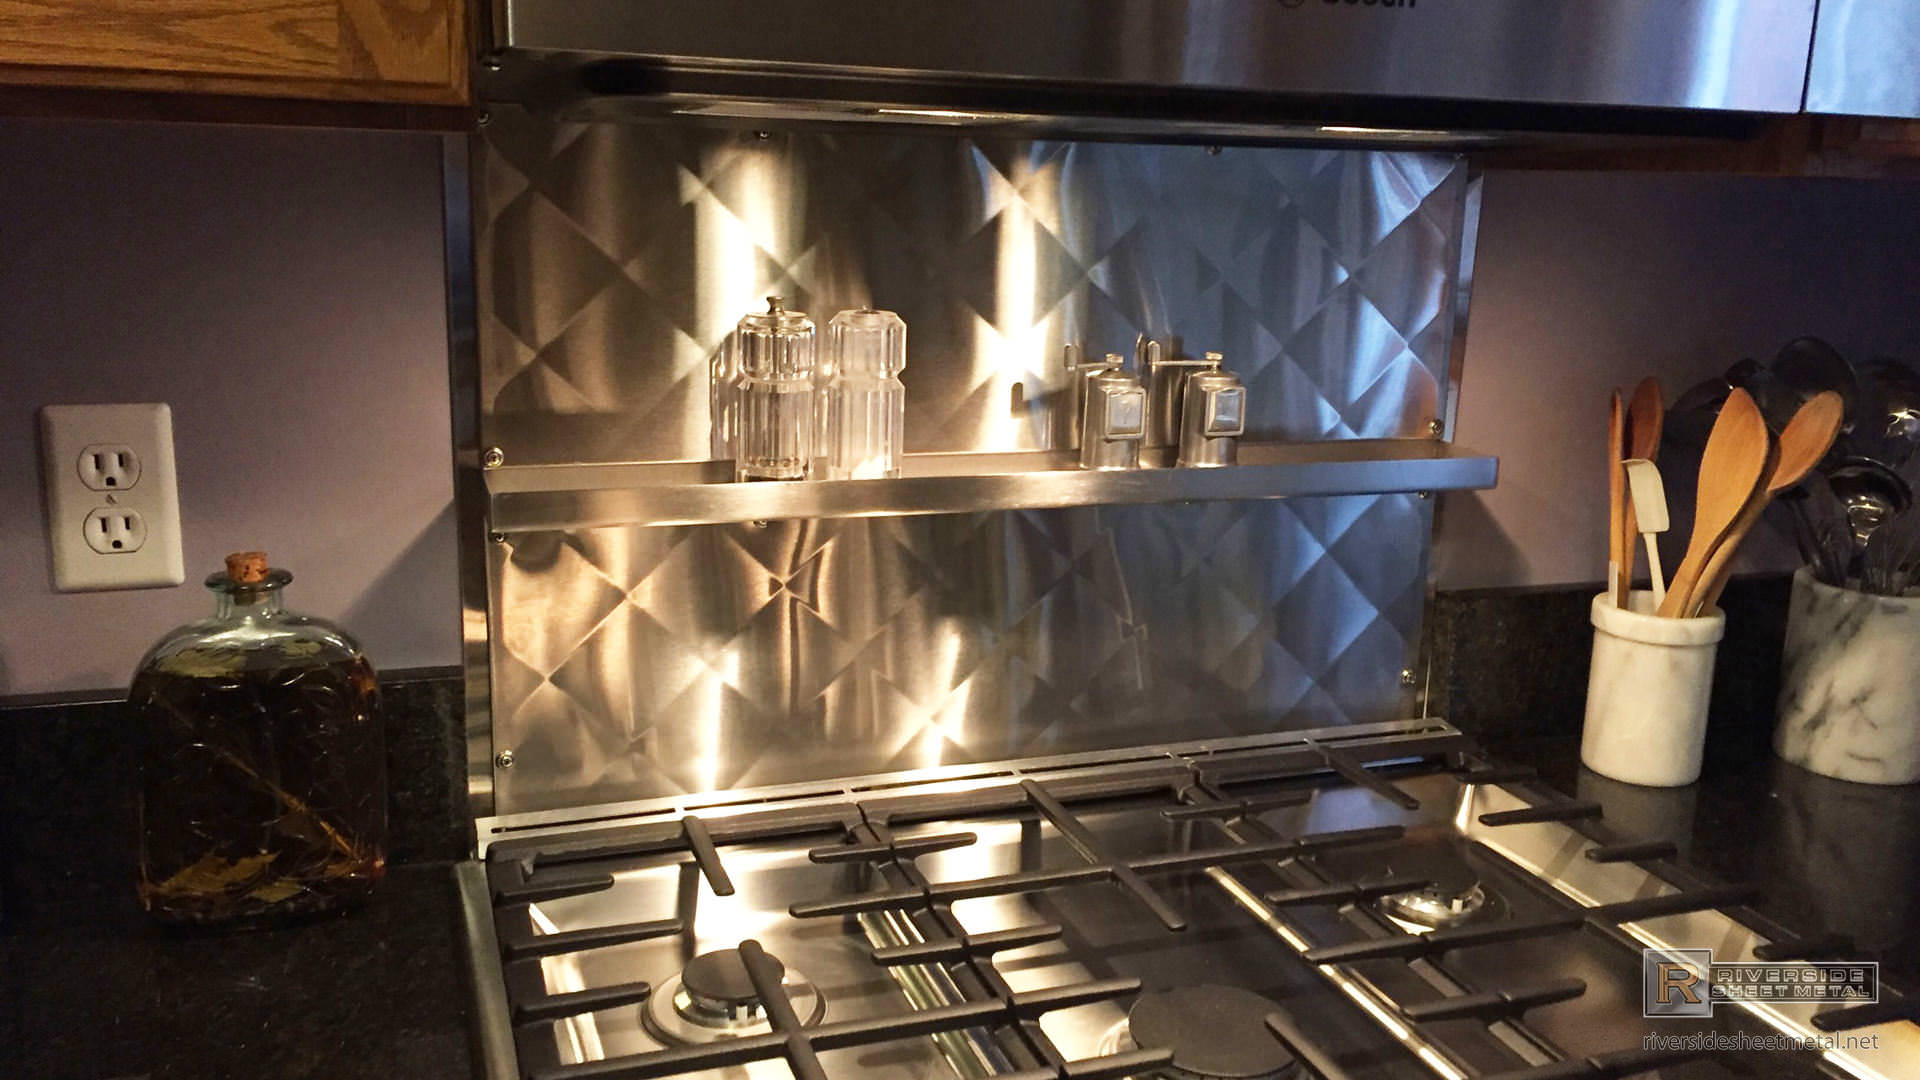 quilted back splash in stainless steel with shelf view 1